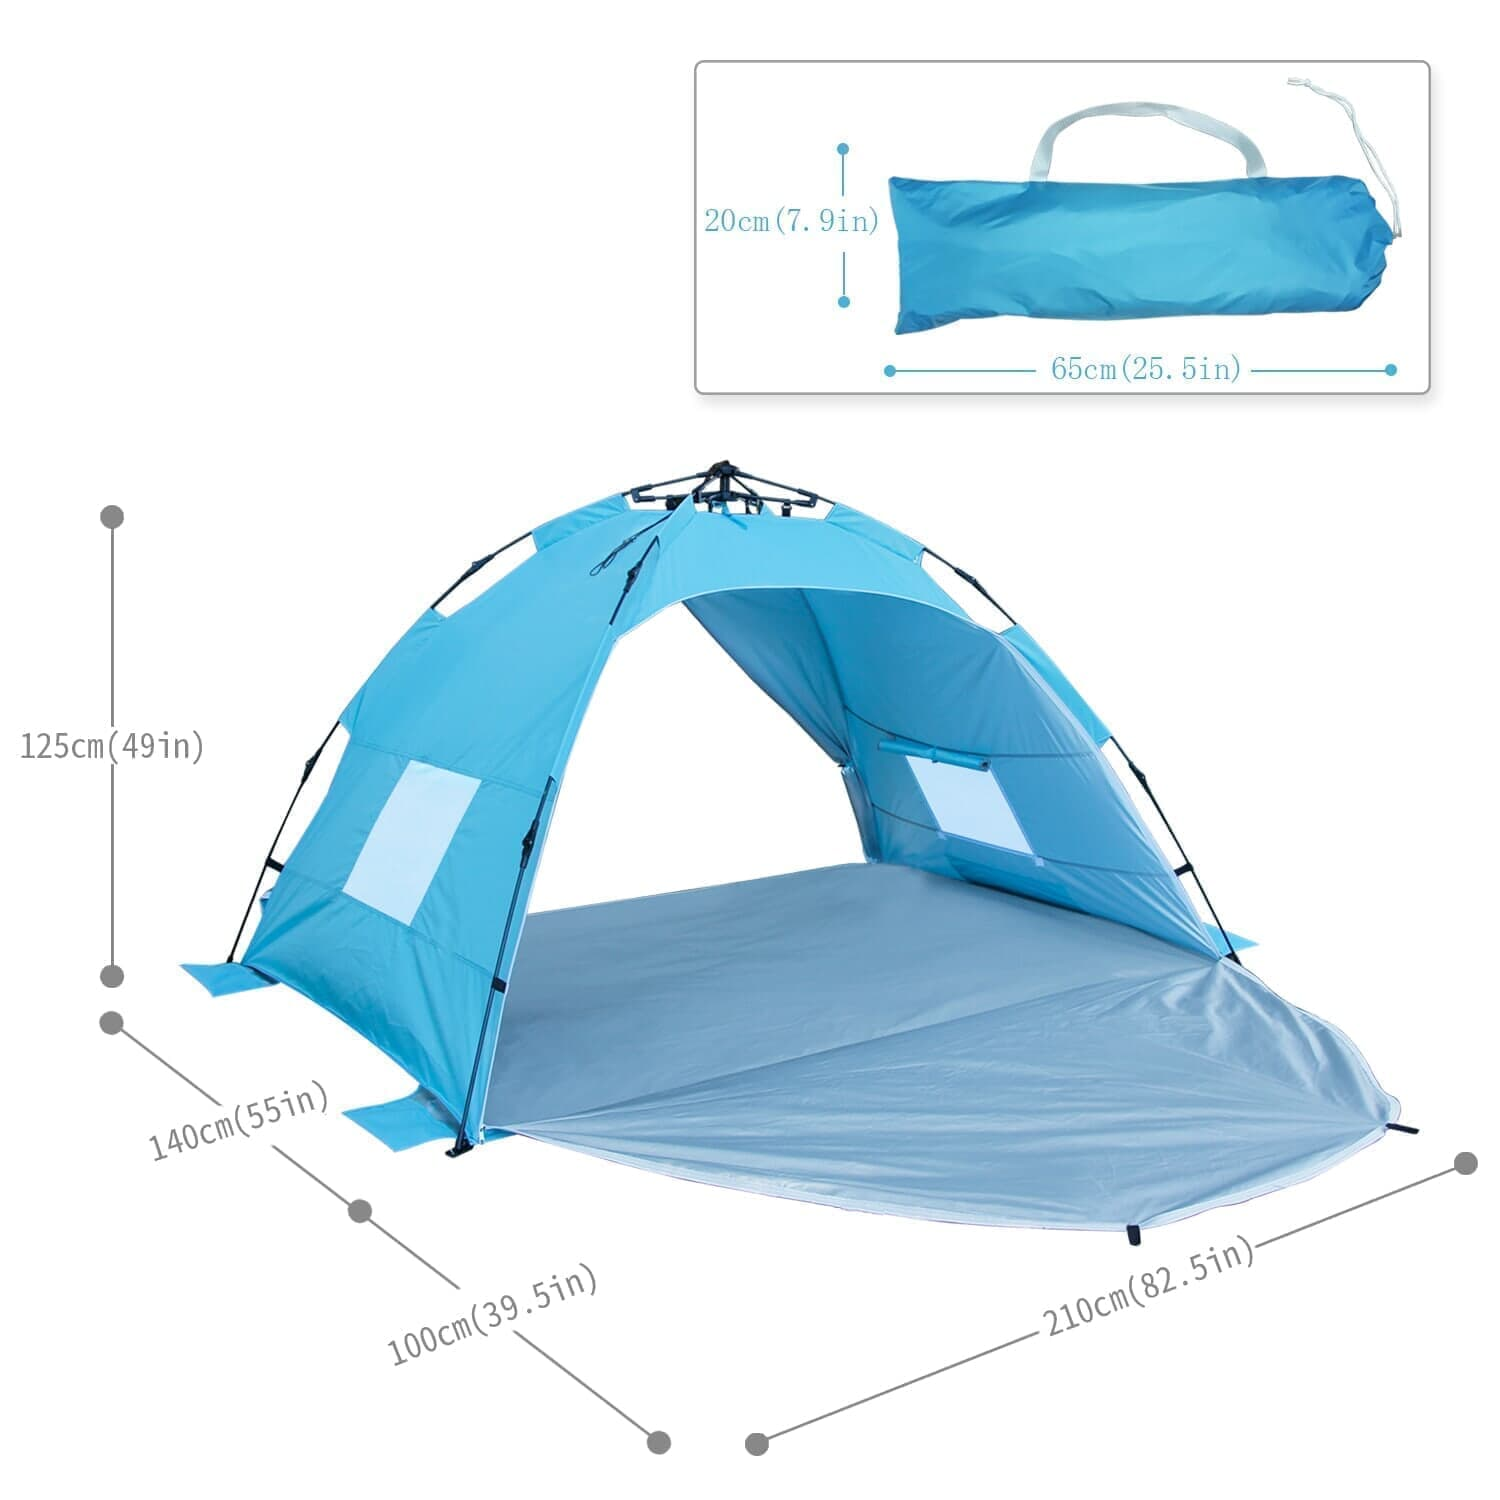 Homfu Sun shelter Beach Tent 3 or 4 Person Automatic Camping Tent with UV Protection pop up Beach Shade for Outdoor Activities Easy Set upALPIKA Beach Tent Outdoor Camping Tent Sun Shelter Family Tent For 2-4 Person26.5